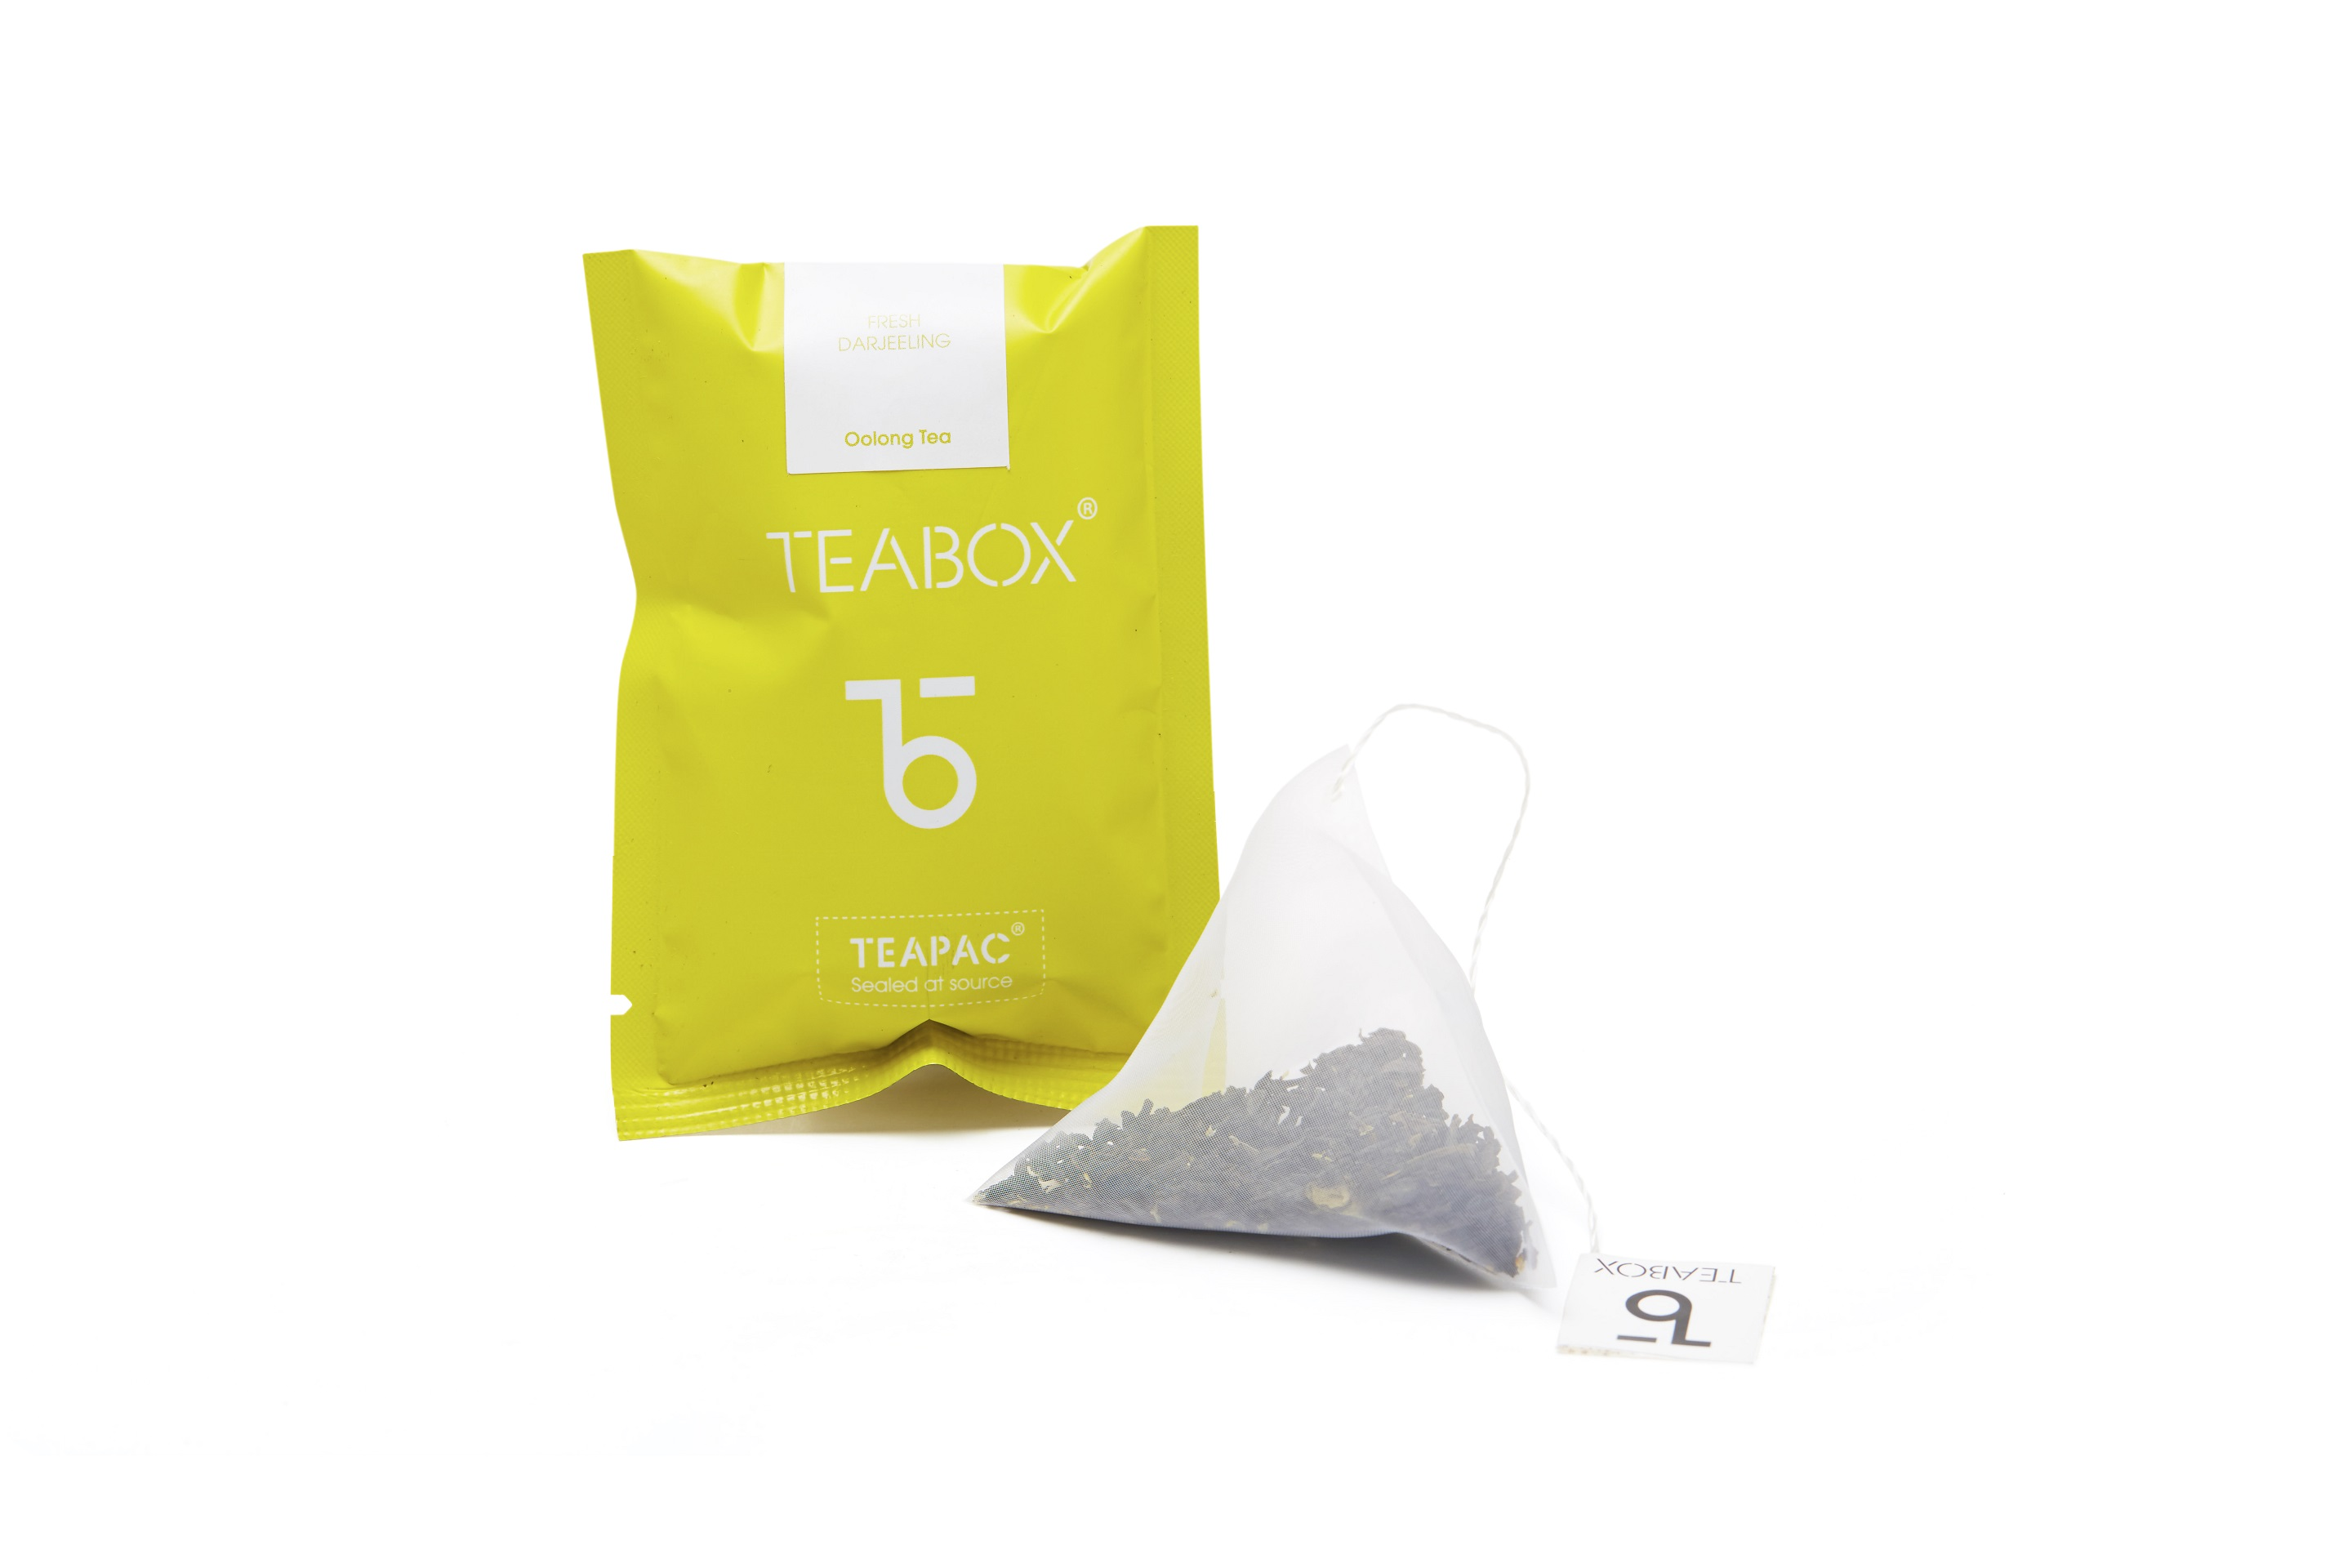 Teabox – The Tea Appreciation Session